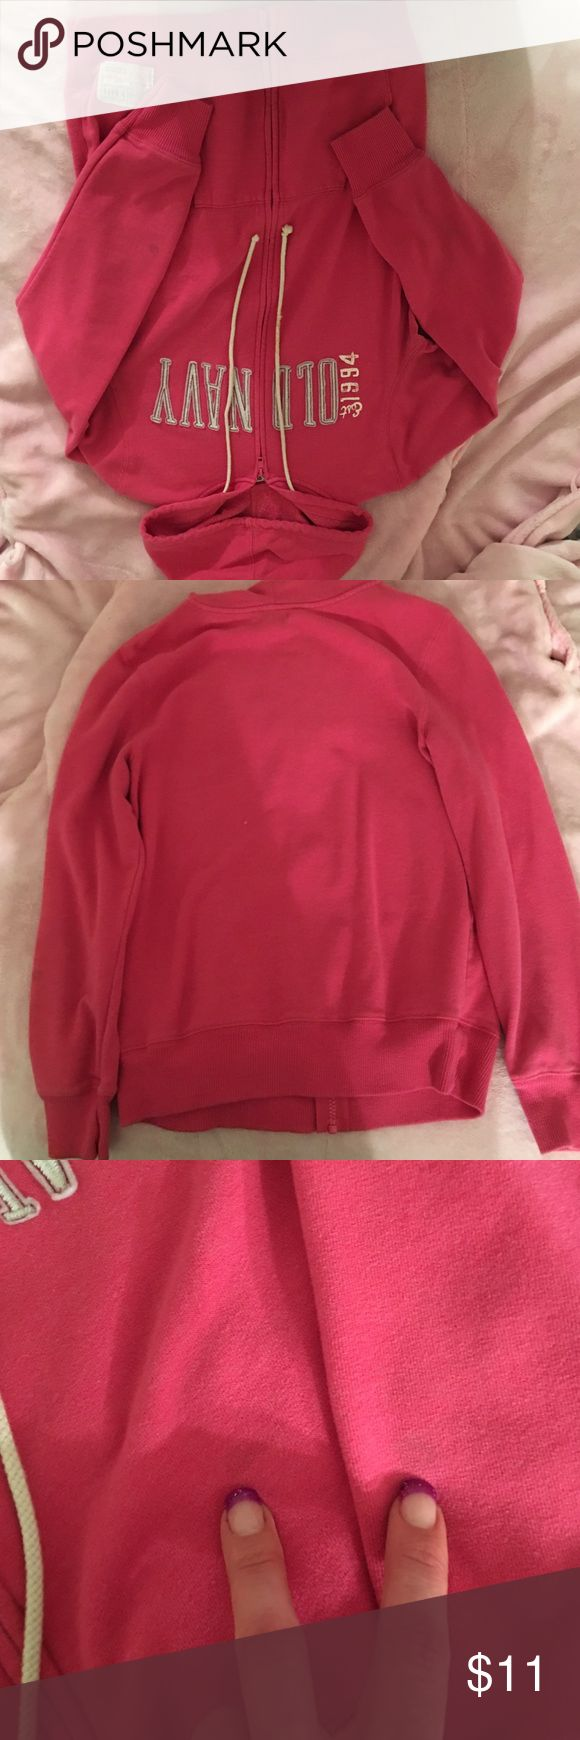 Old navy hoodie Old navy hoodie. Pink, good condition. Two stains shown in last picture. Hardly noticeable when worn! Old Navy Tops Sweatshirts & Hoodies